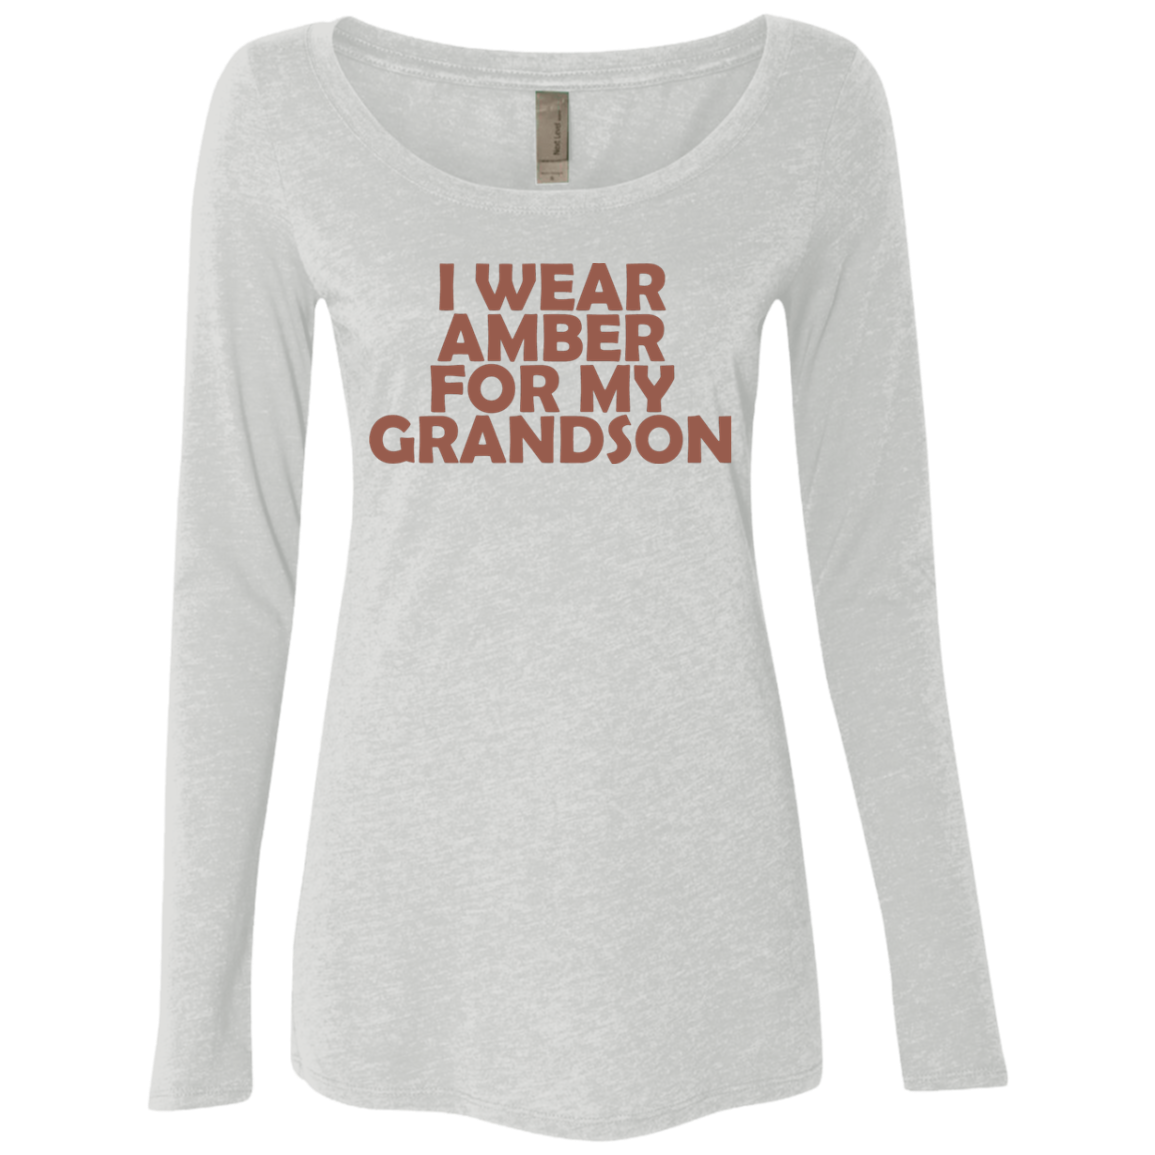 I Wear Amber For My Grandson Women's Long Sleeve Tee